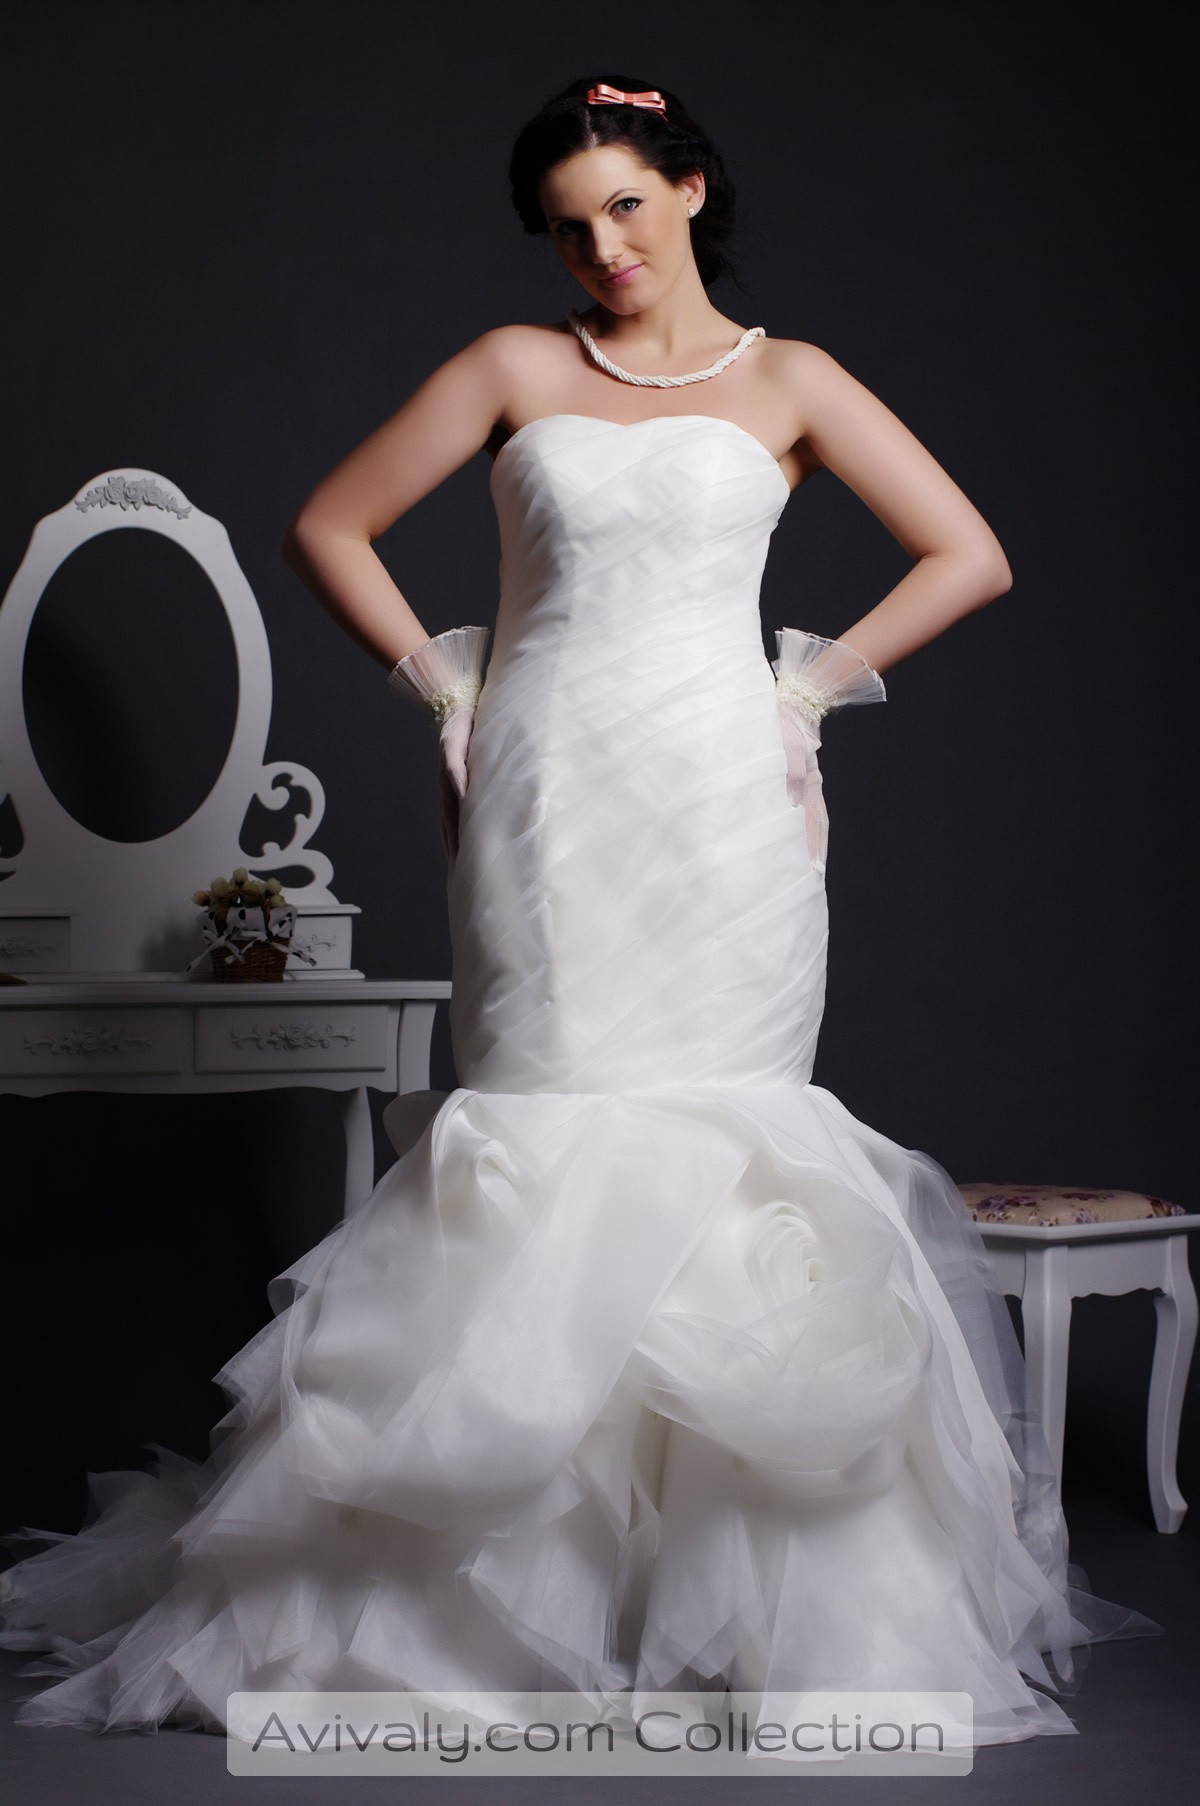 Millyrose - Exuberantly Tiered Skirt Sprays out of Slim Fitting Bodice for Strapless Mermaid Dress